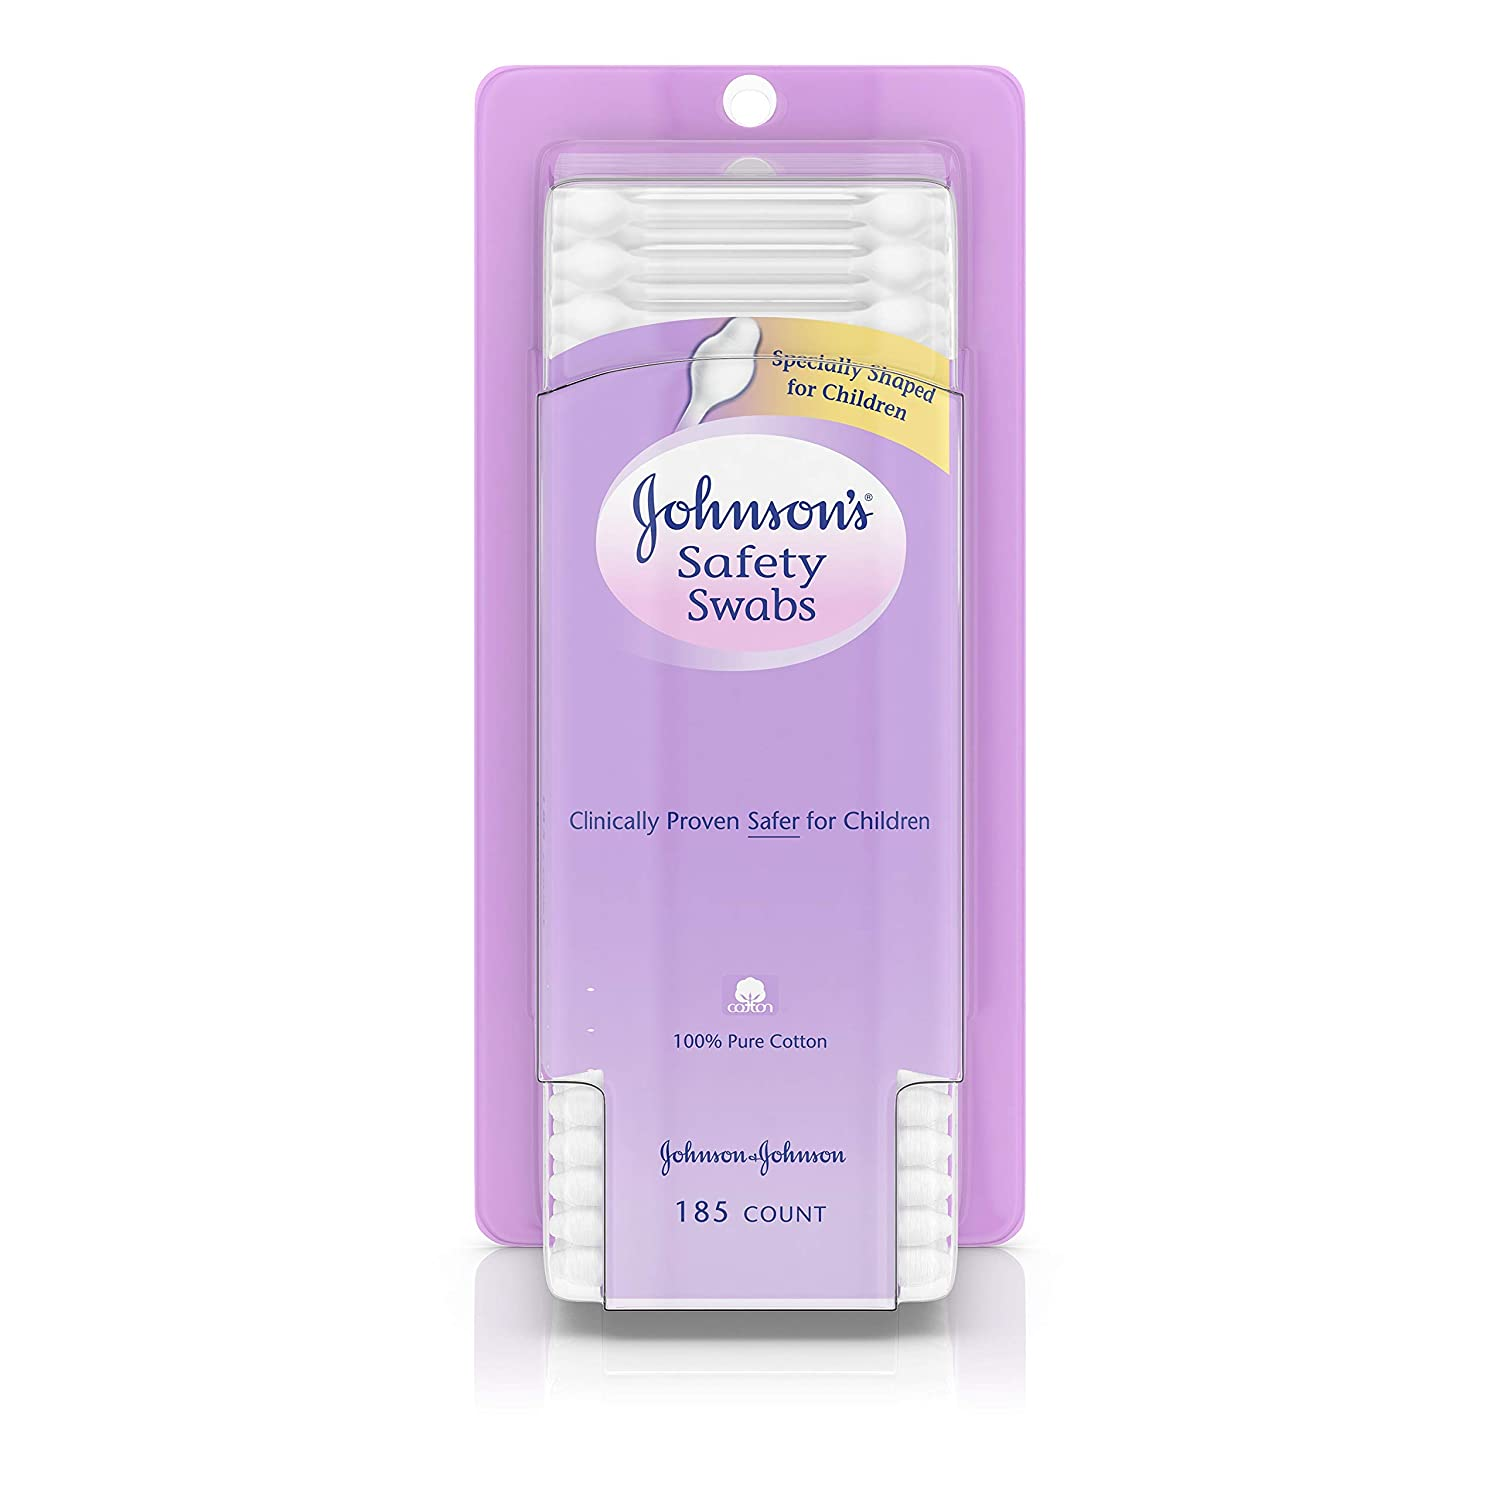 Johnson's Safety Ear Swabs for Babies & Children made with Non-Chlorine Bleached Cotton, 185 ct (Packaging May Vary) Johnson's Baby JJ-142